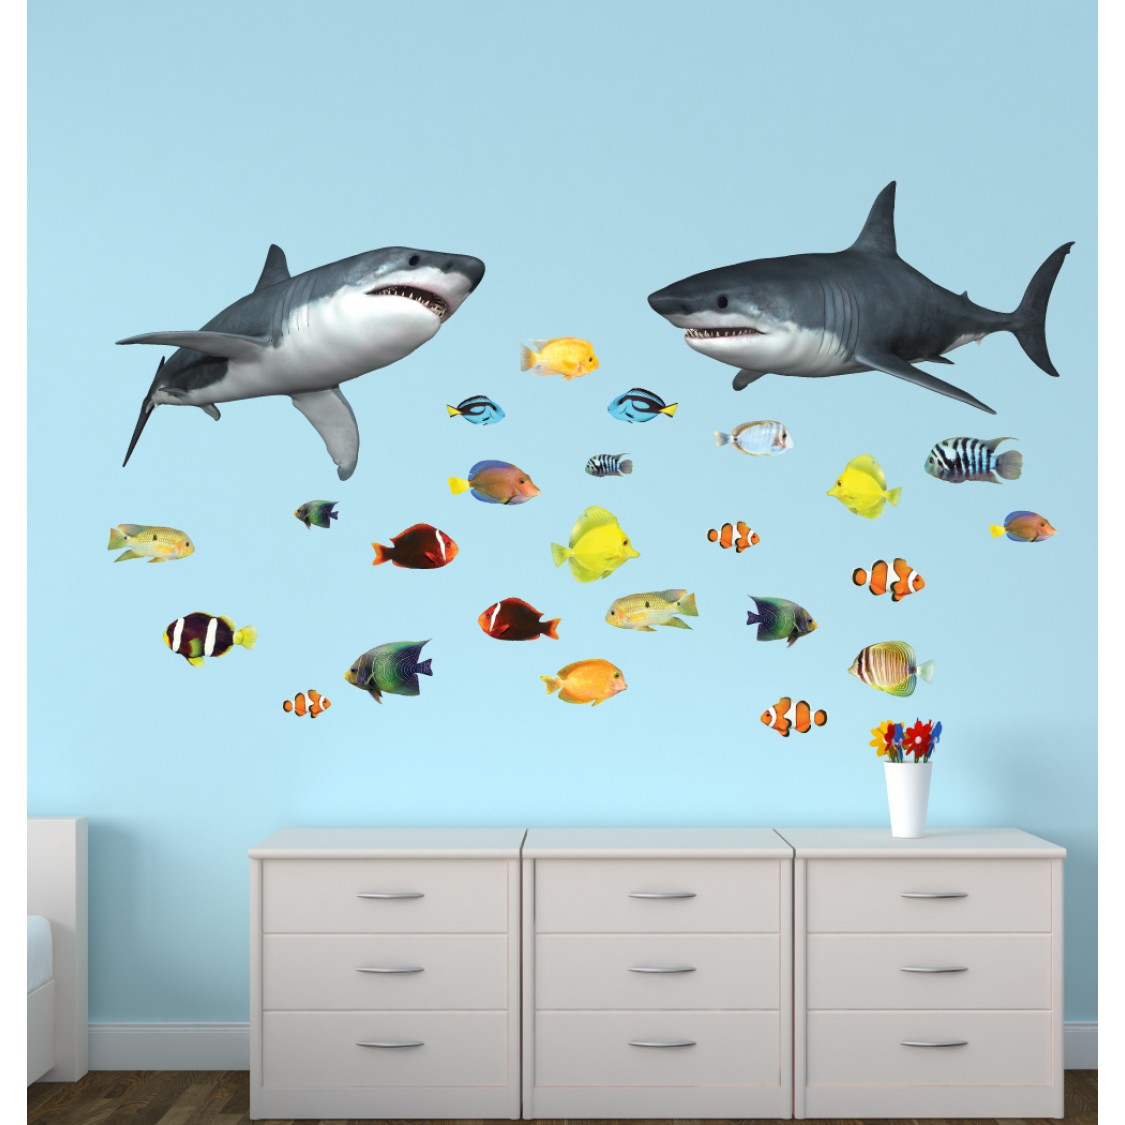 Wall Stickers Giant With Shark Wall Decor For Nursery Or